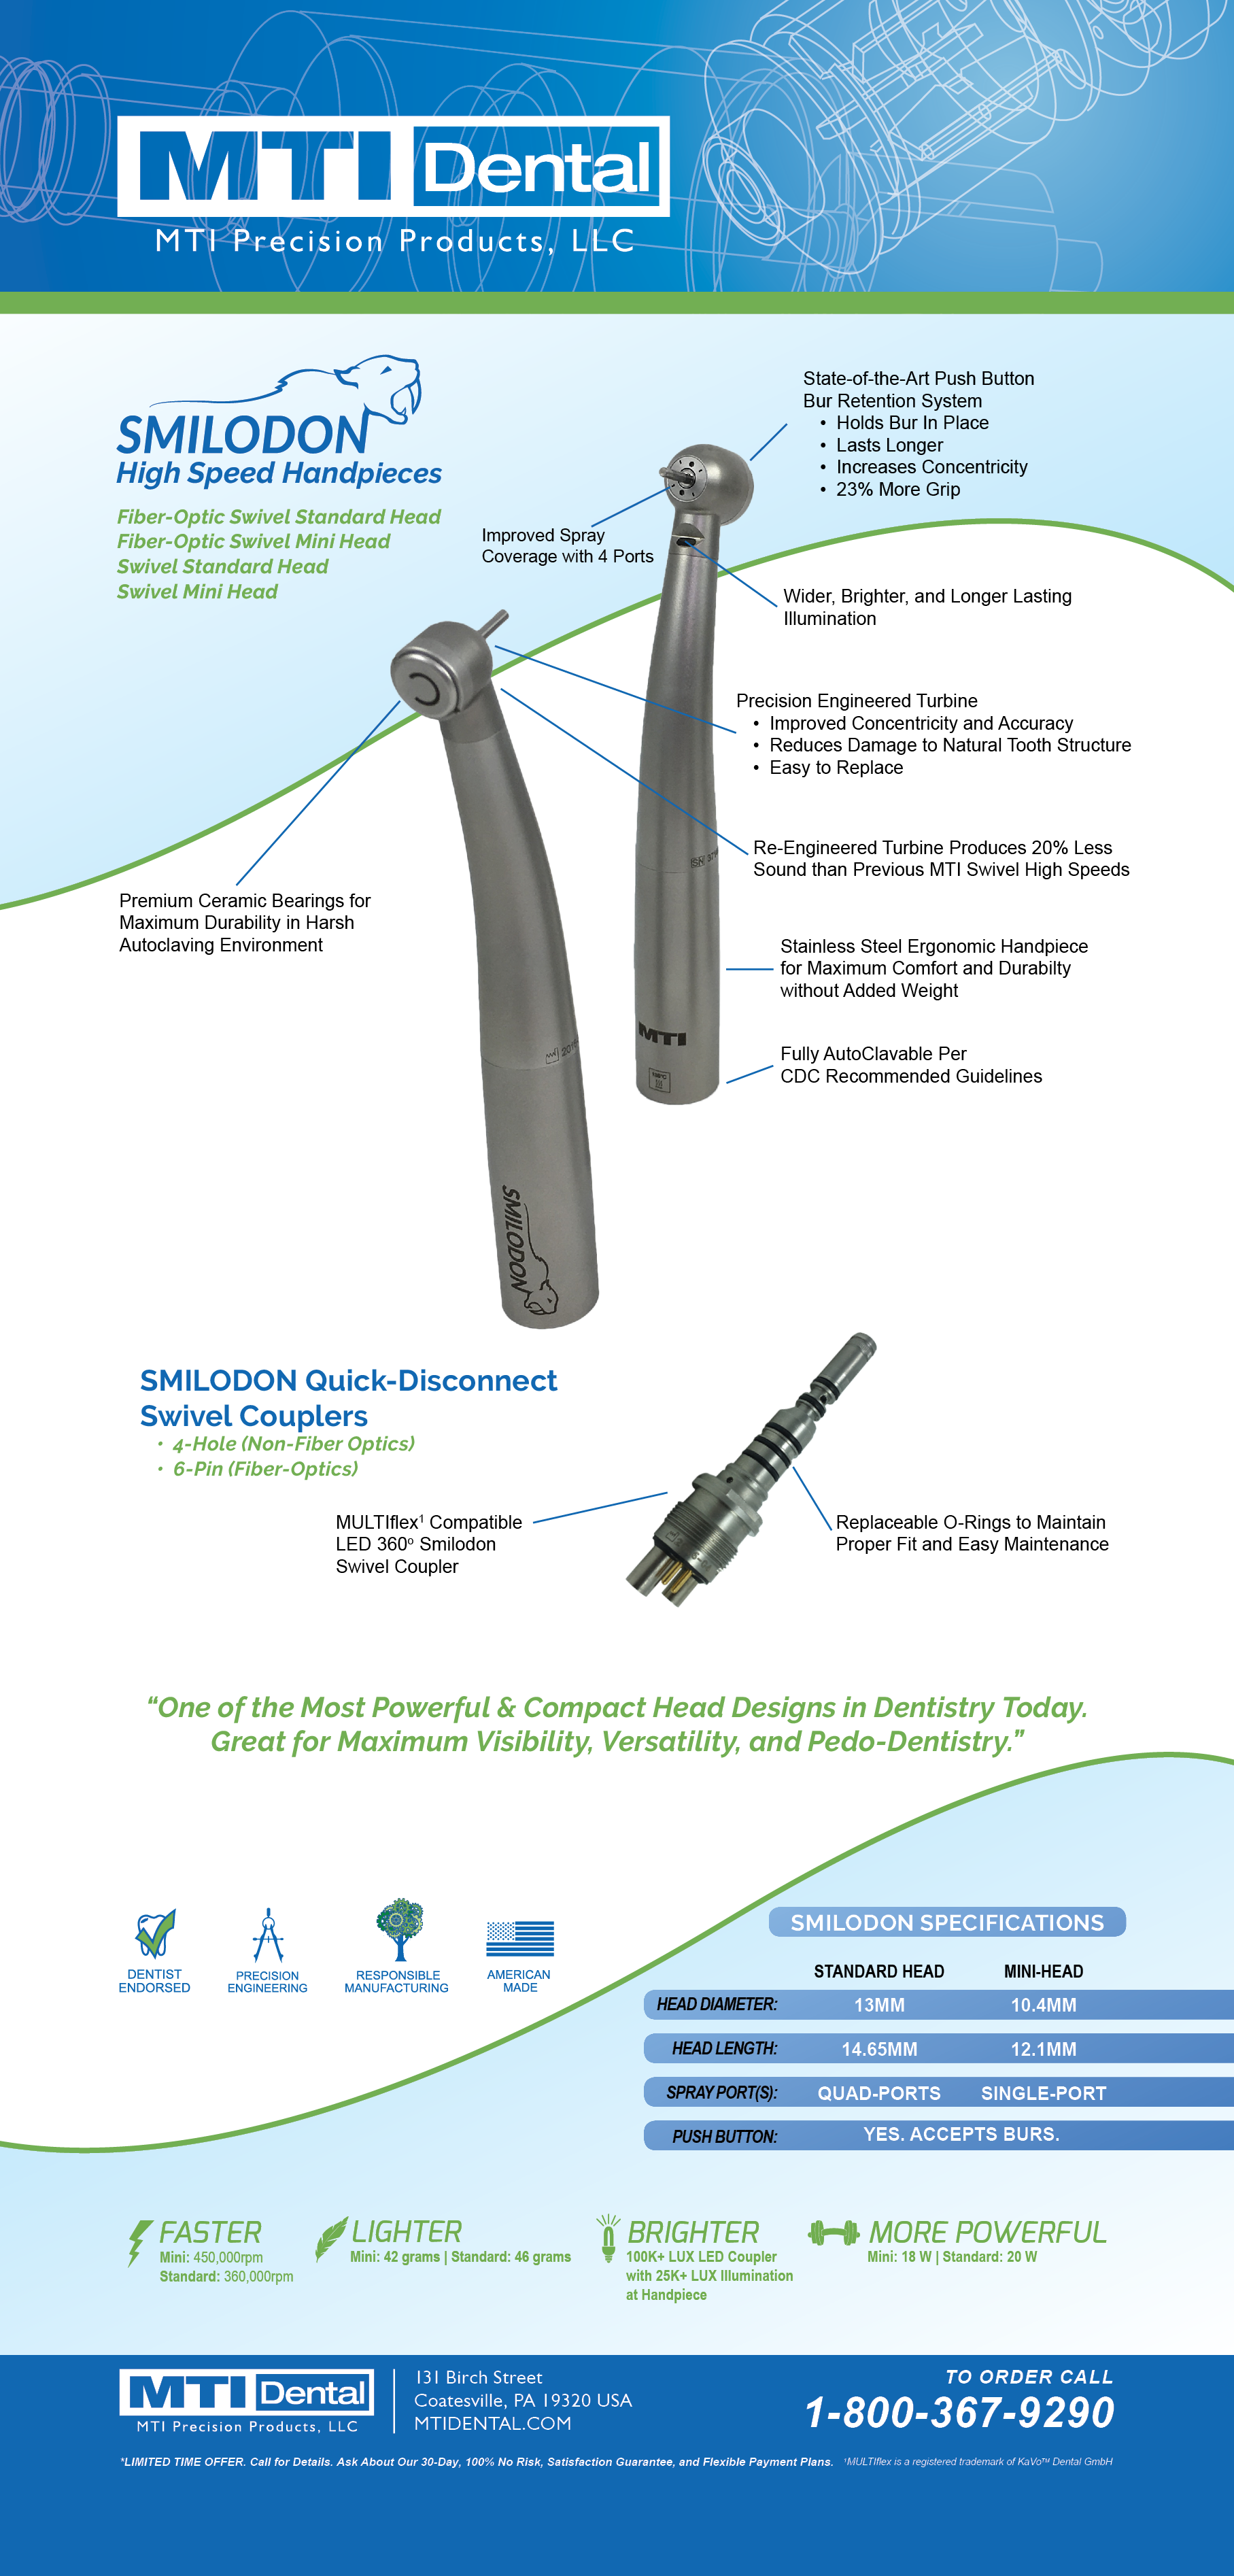 MTI Dental SMILODON High Speed Handpieces